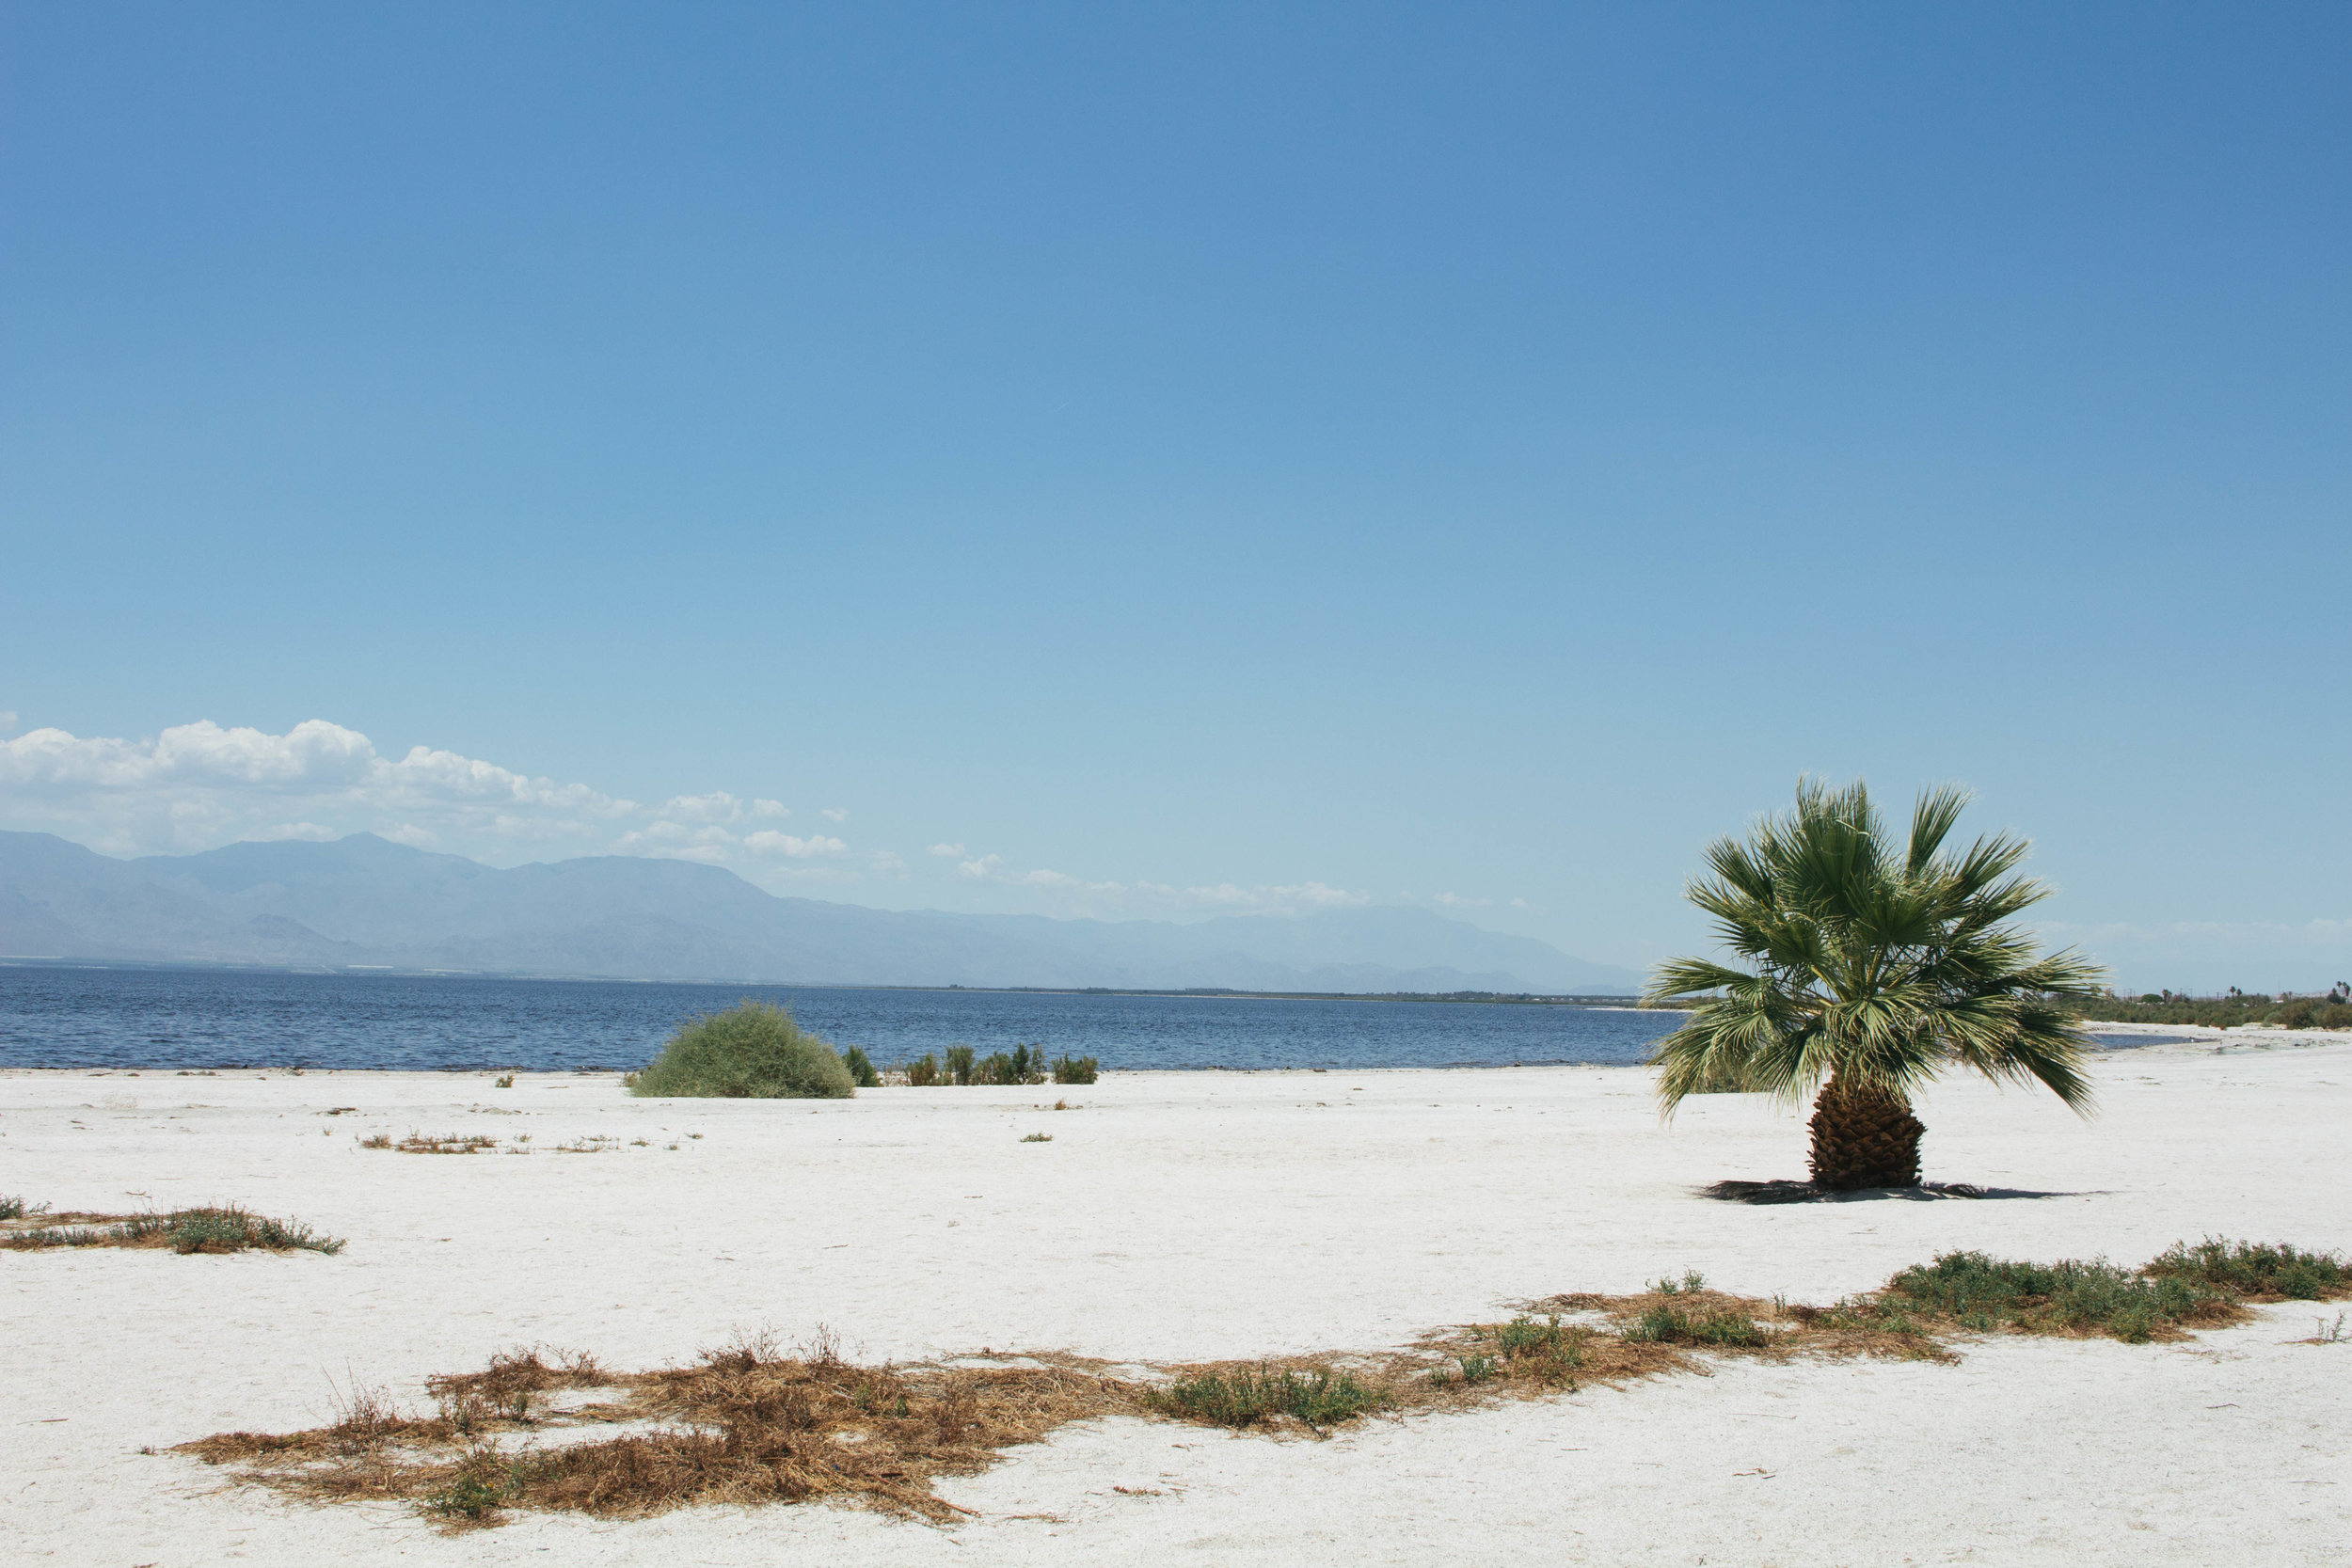 Salton Sea, California via Worthy Pause